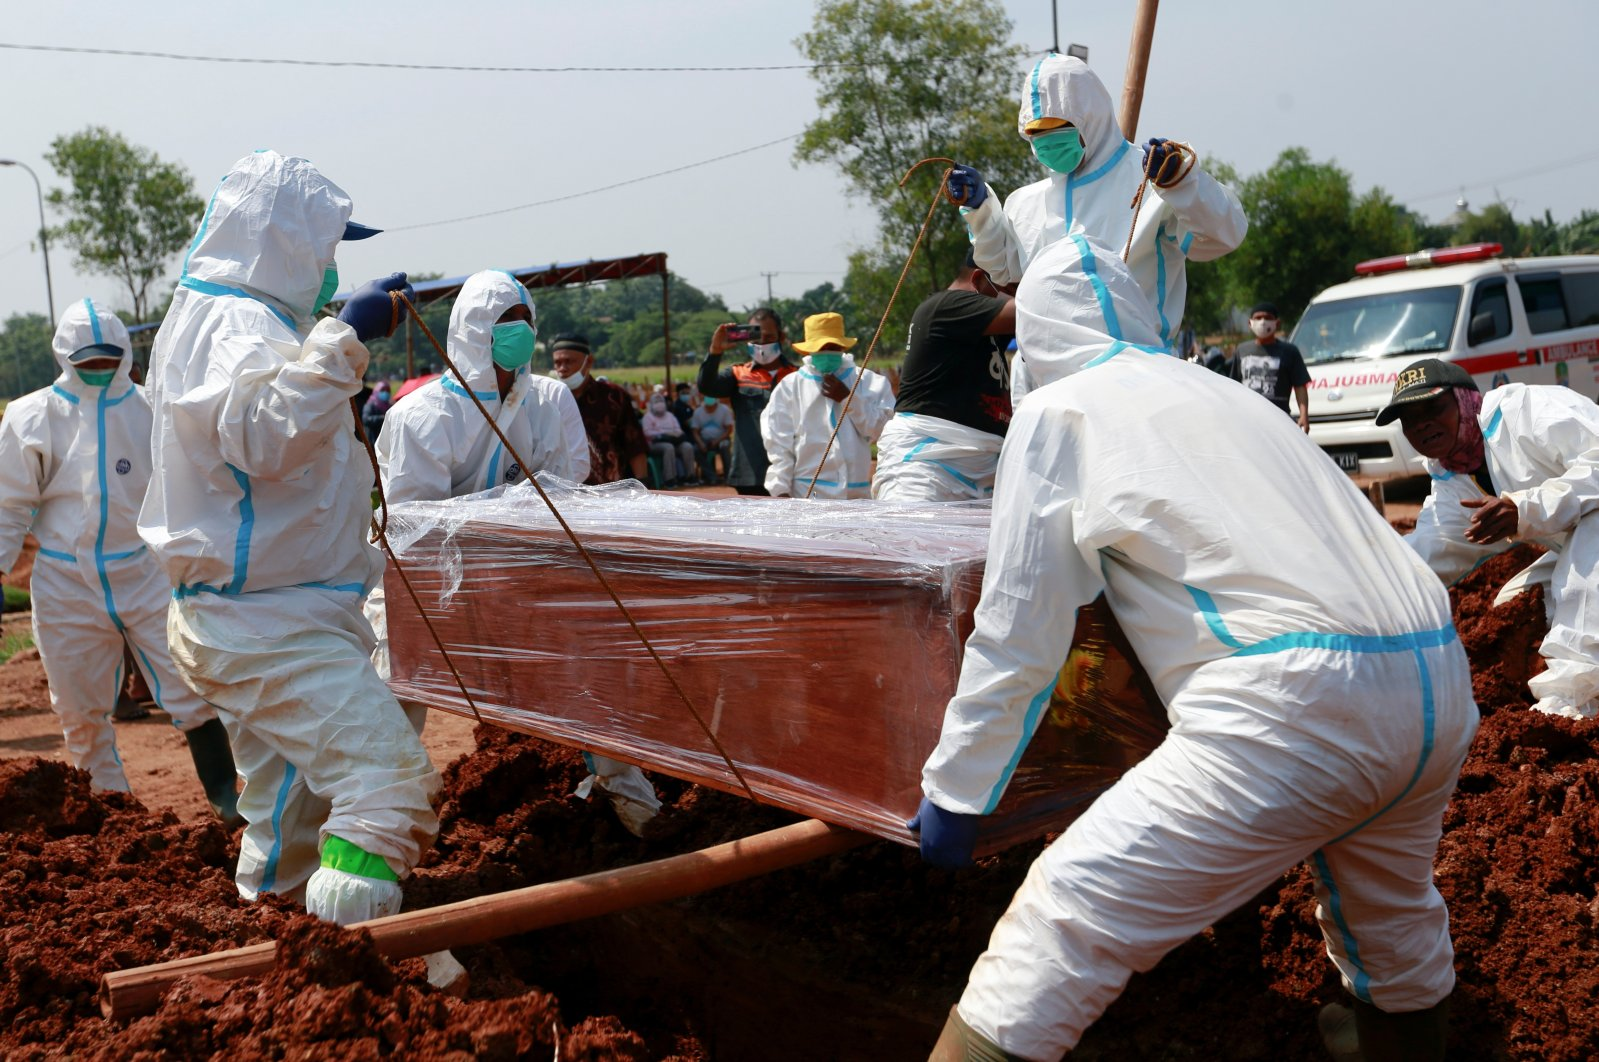 Gravediggers wearing personal protective equipment (PPE) bury a coffin at a Muslim burial area provided by the government for coronavirus victims in Bekasi, on the outskirts of Jakarta, Indonesia, July 8, 2021. (Reuters Photo)